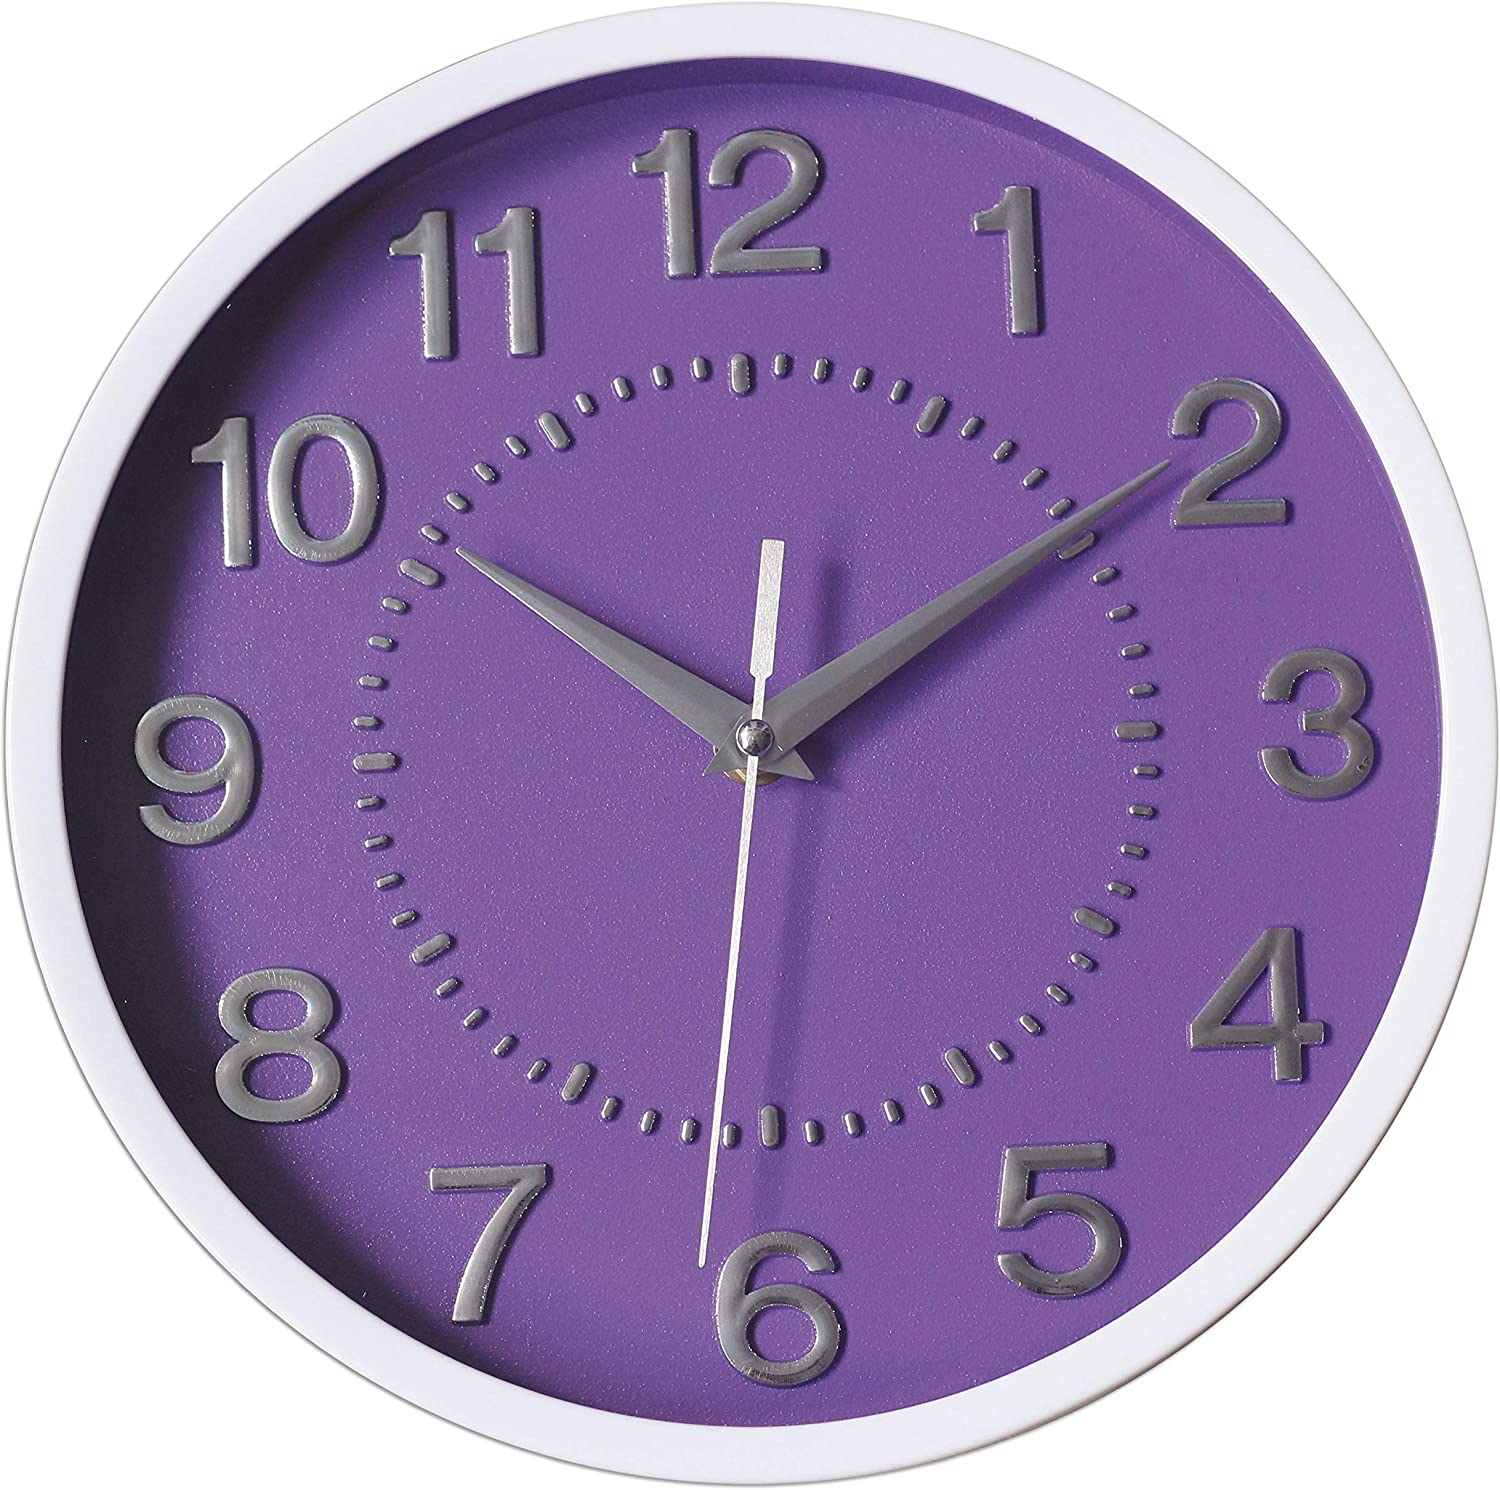 """Decor Silent Wall Clock 10"""" Purple Dial 3D Numbers Non-ticking Decorative Wall Clock Battery Operated Round Easy to Read For School/Home/Office/Hotel"""